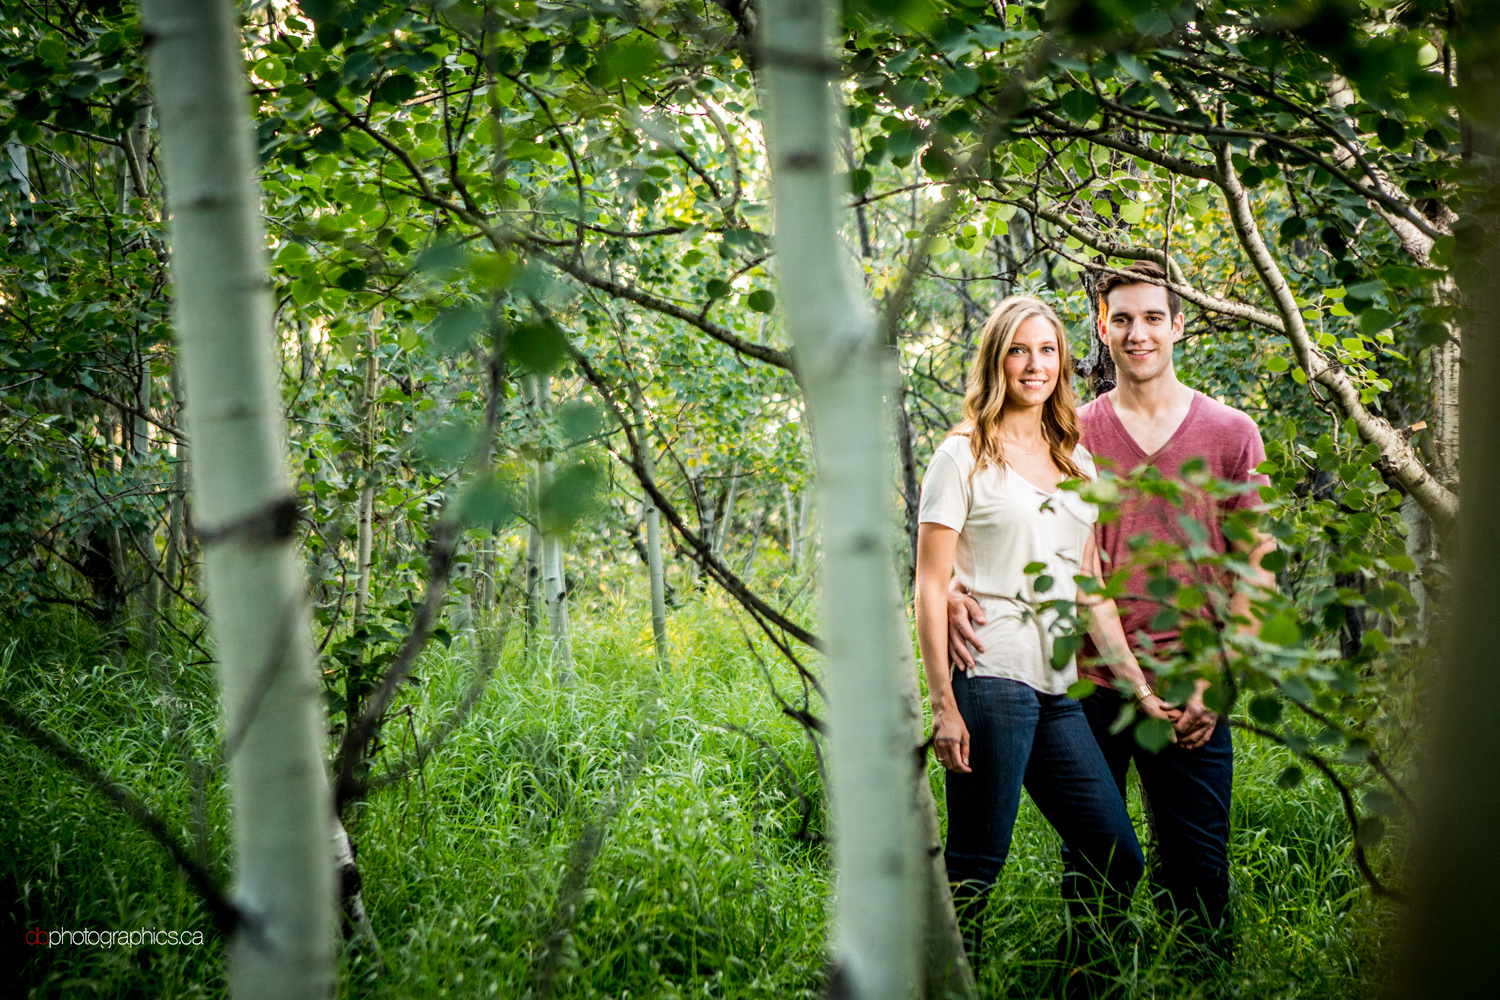 Ben & Melissa - Engagement Session - 20140713 - 0074.jpg